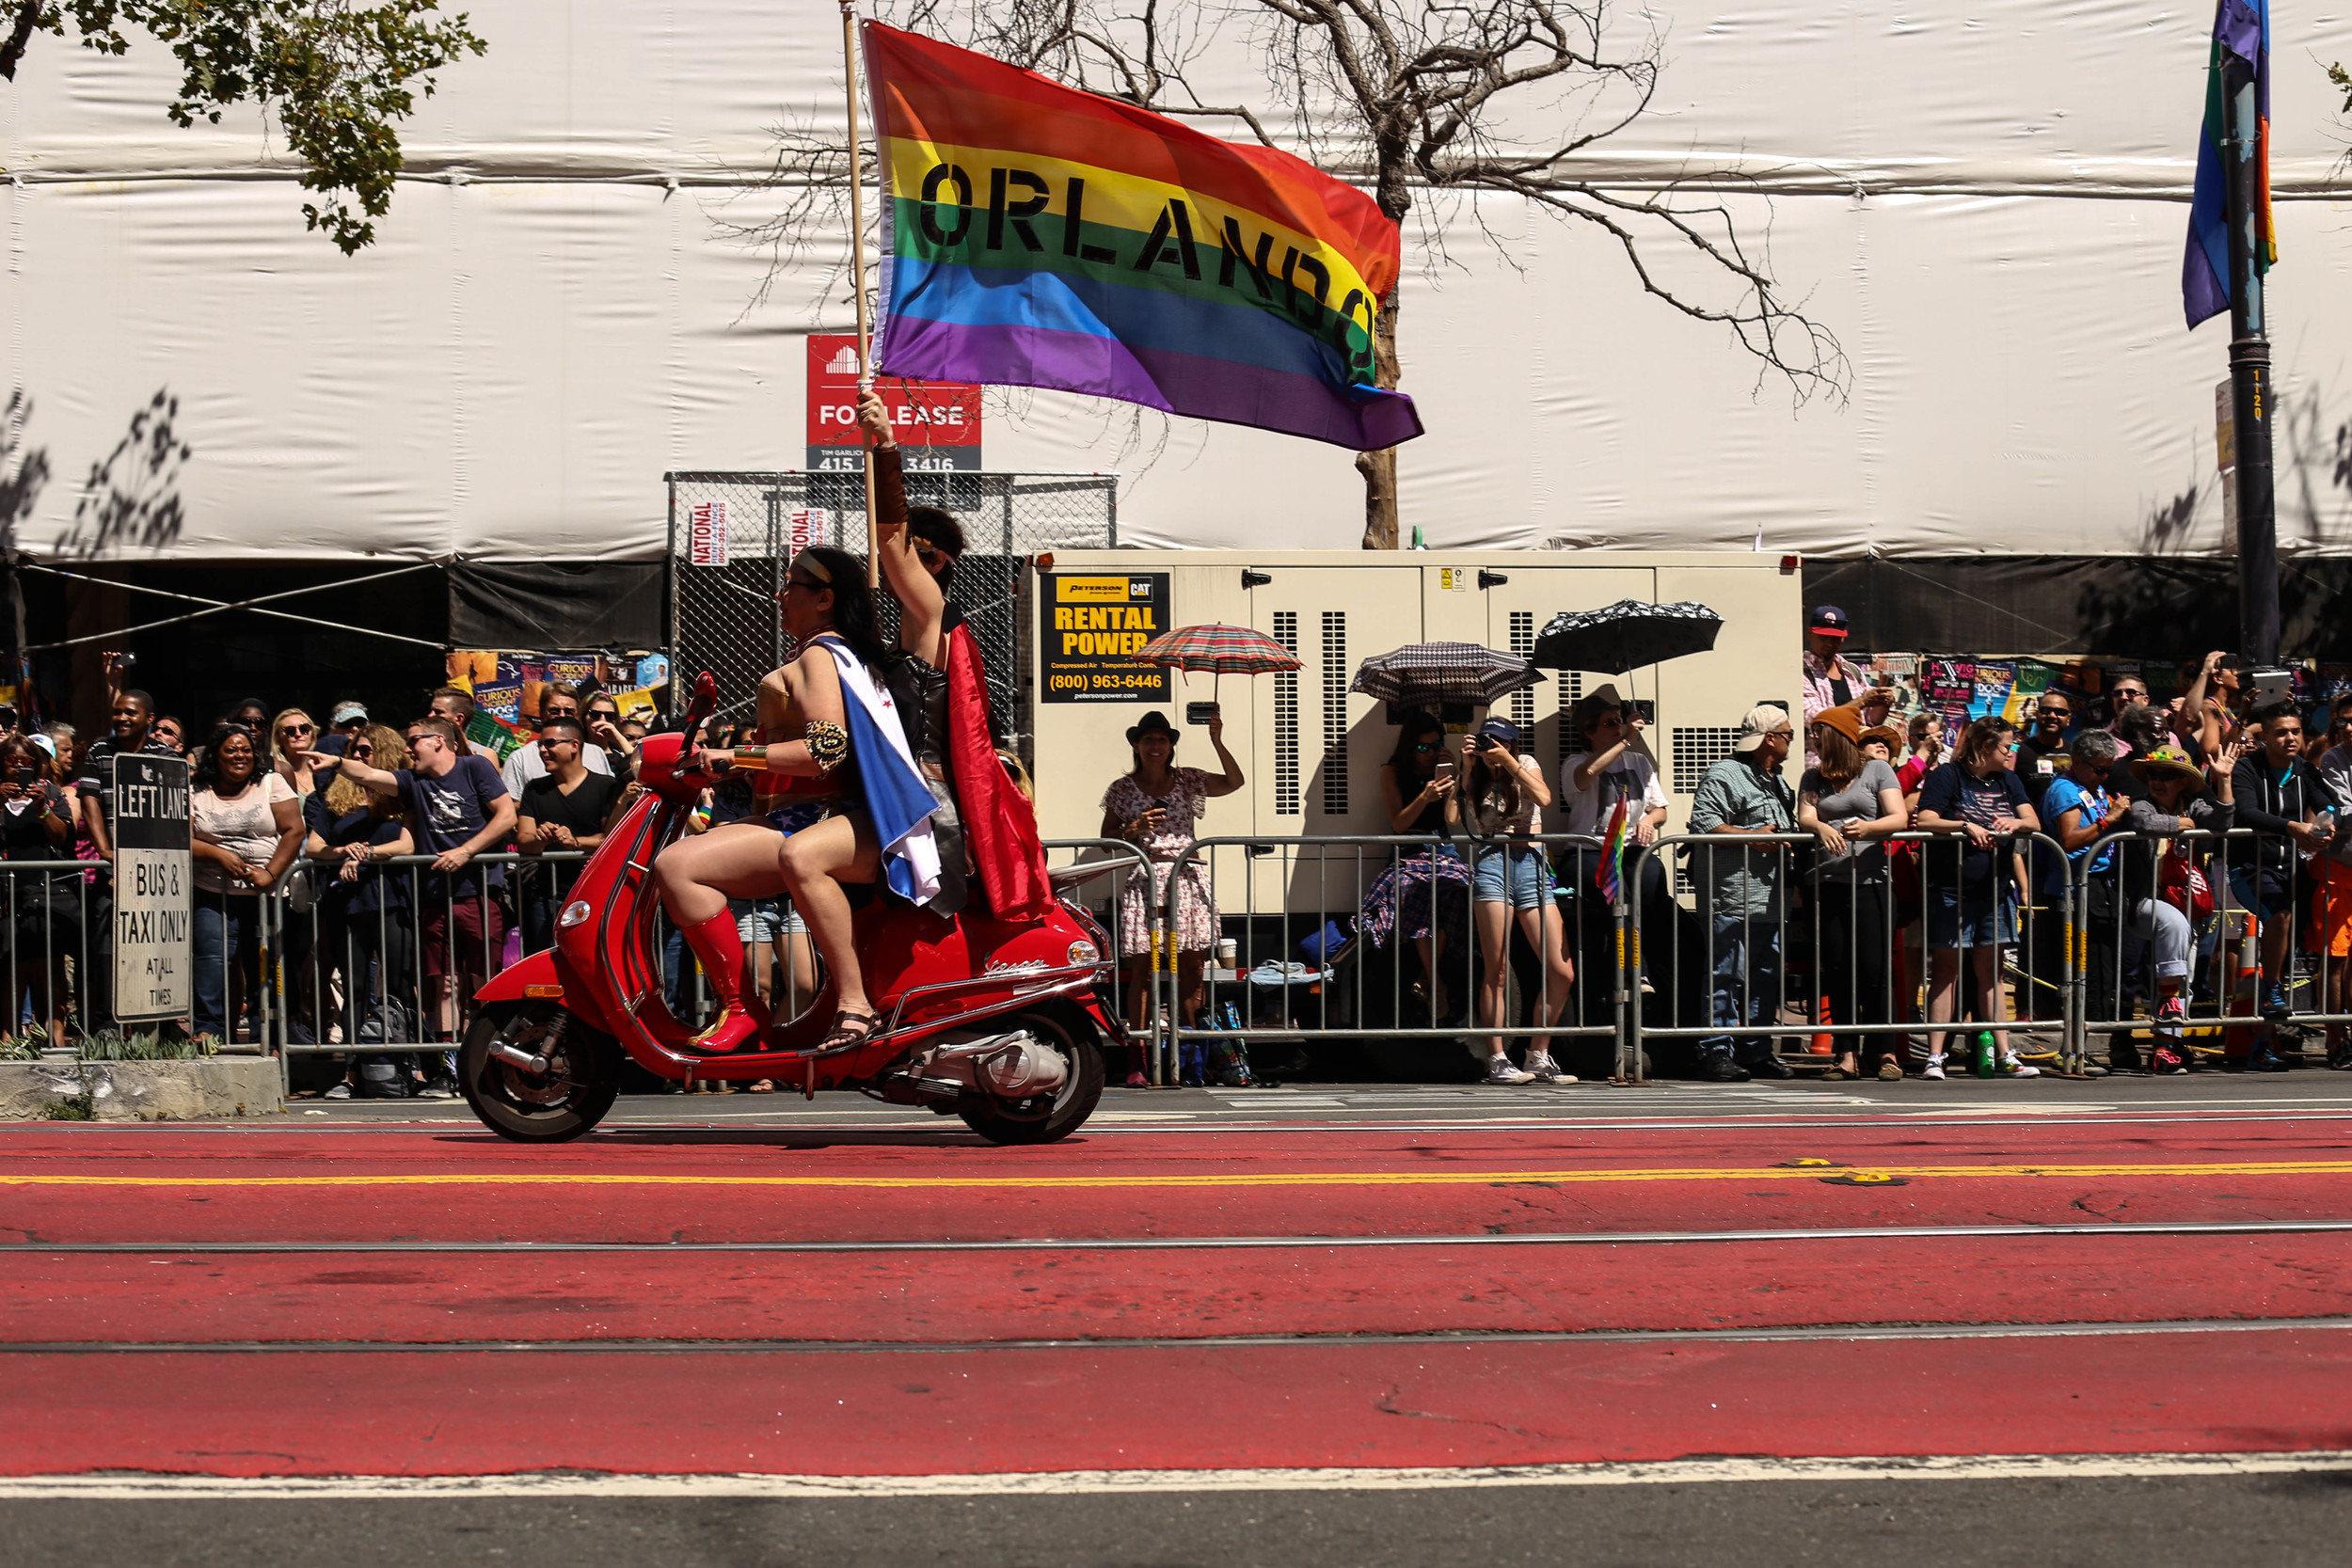 The 2016 San Fransisco Pride Parade kicked off with motorcycles and scooters as thousands gathered to celebrate Pride in San Francisco. Sunday, June 26, 2016.